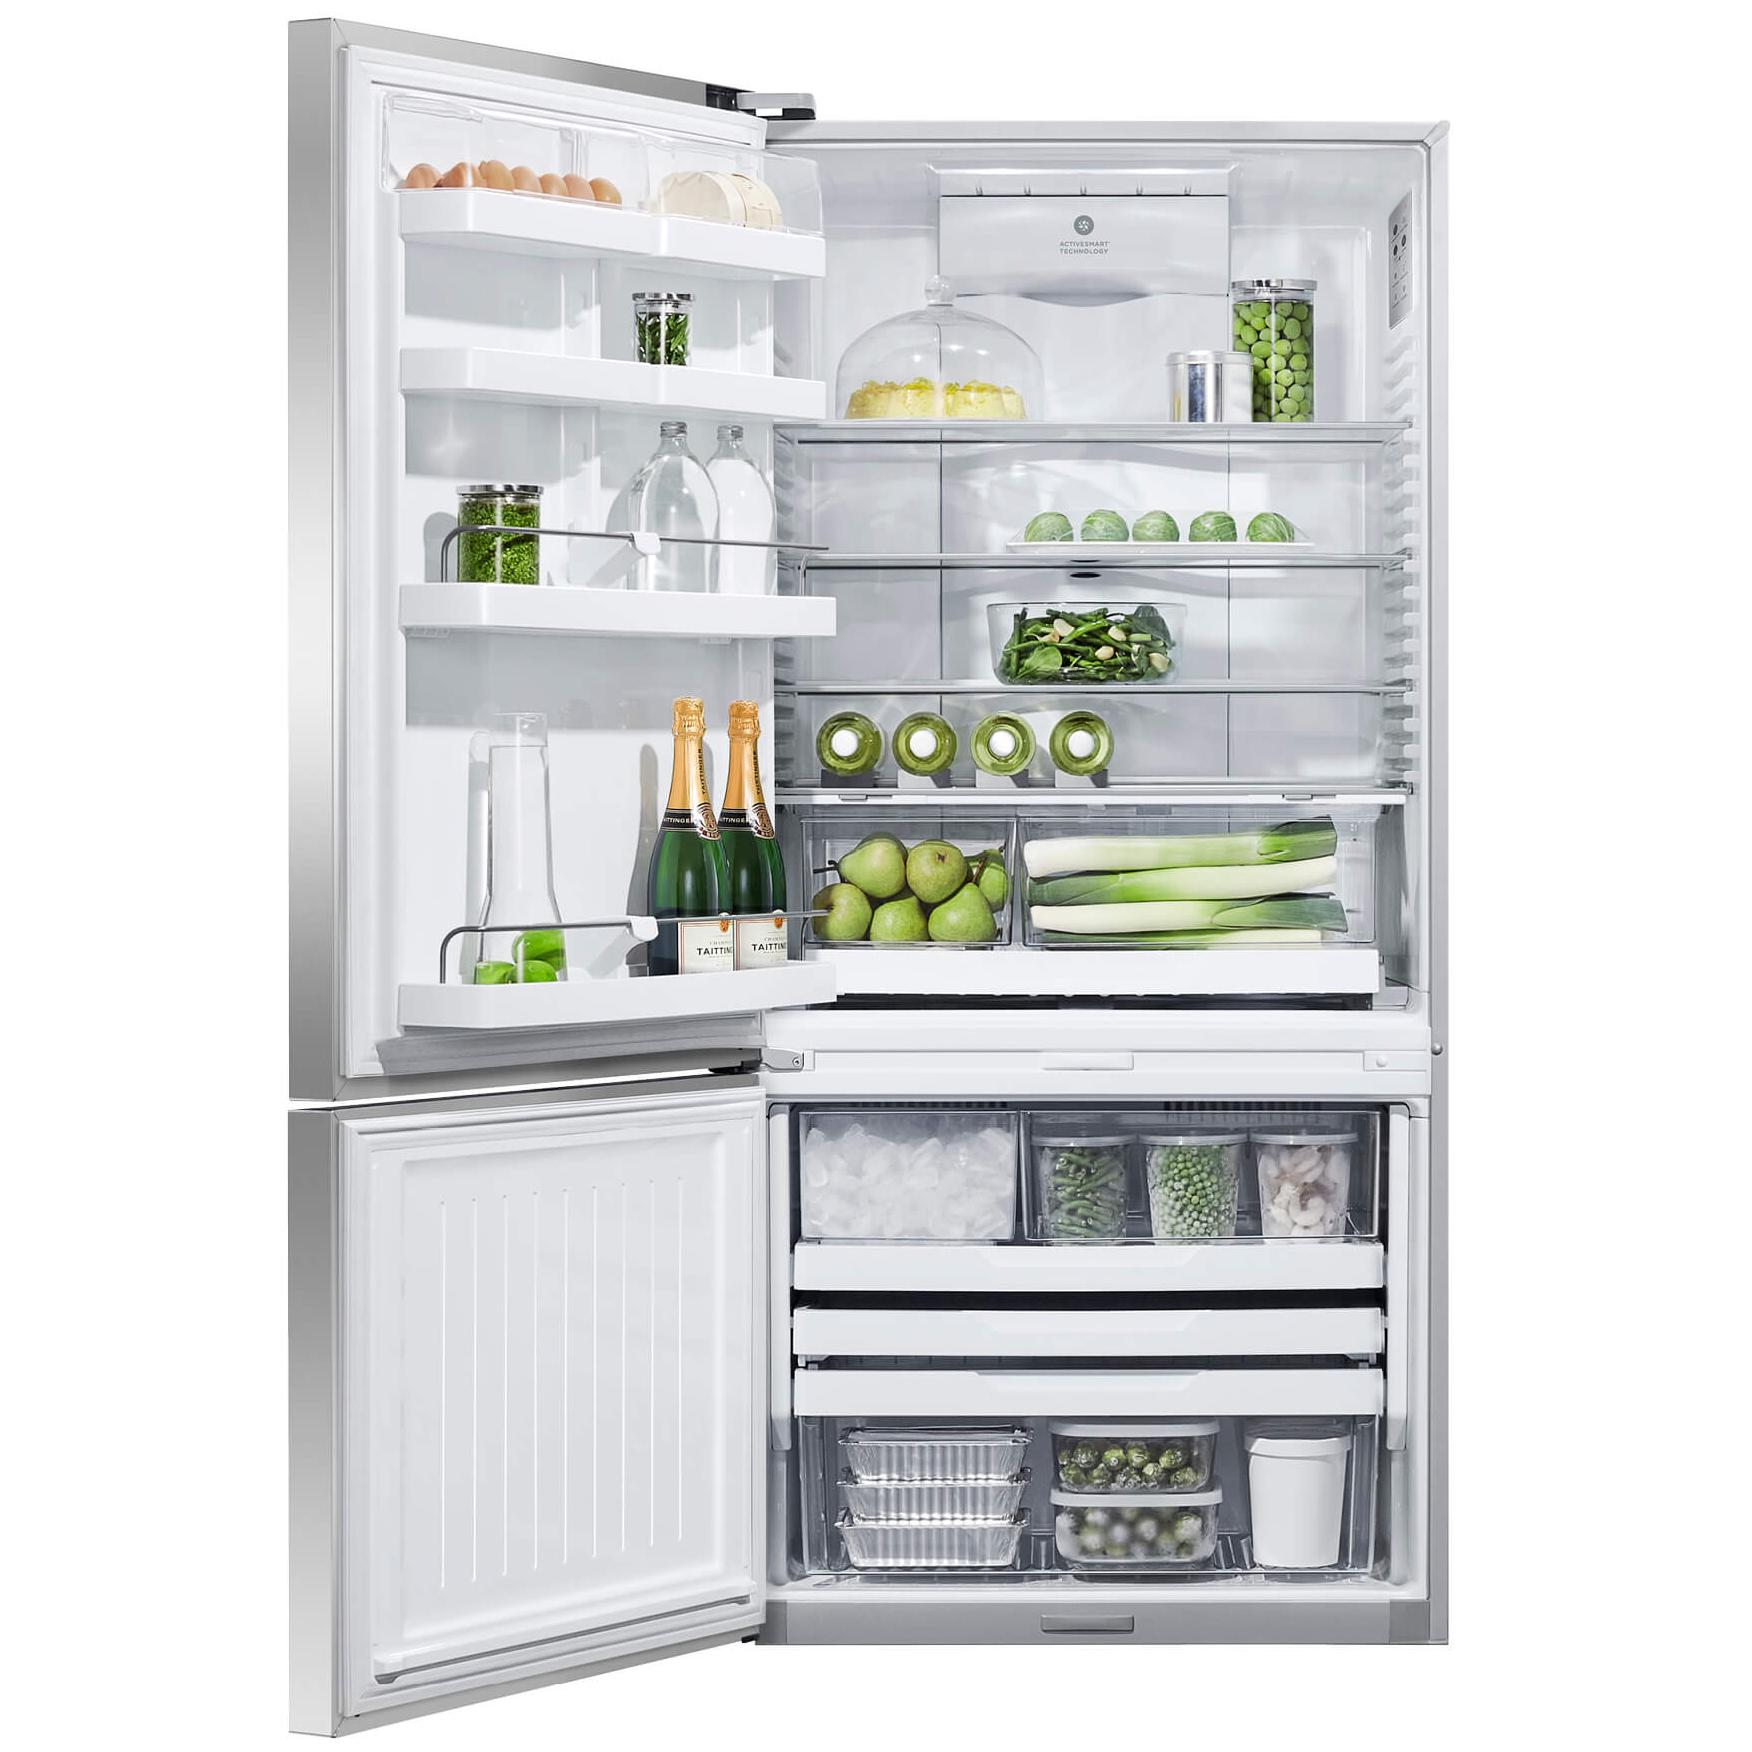 fisher and paykel p 120 fridge instructions